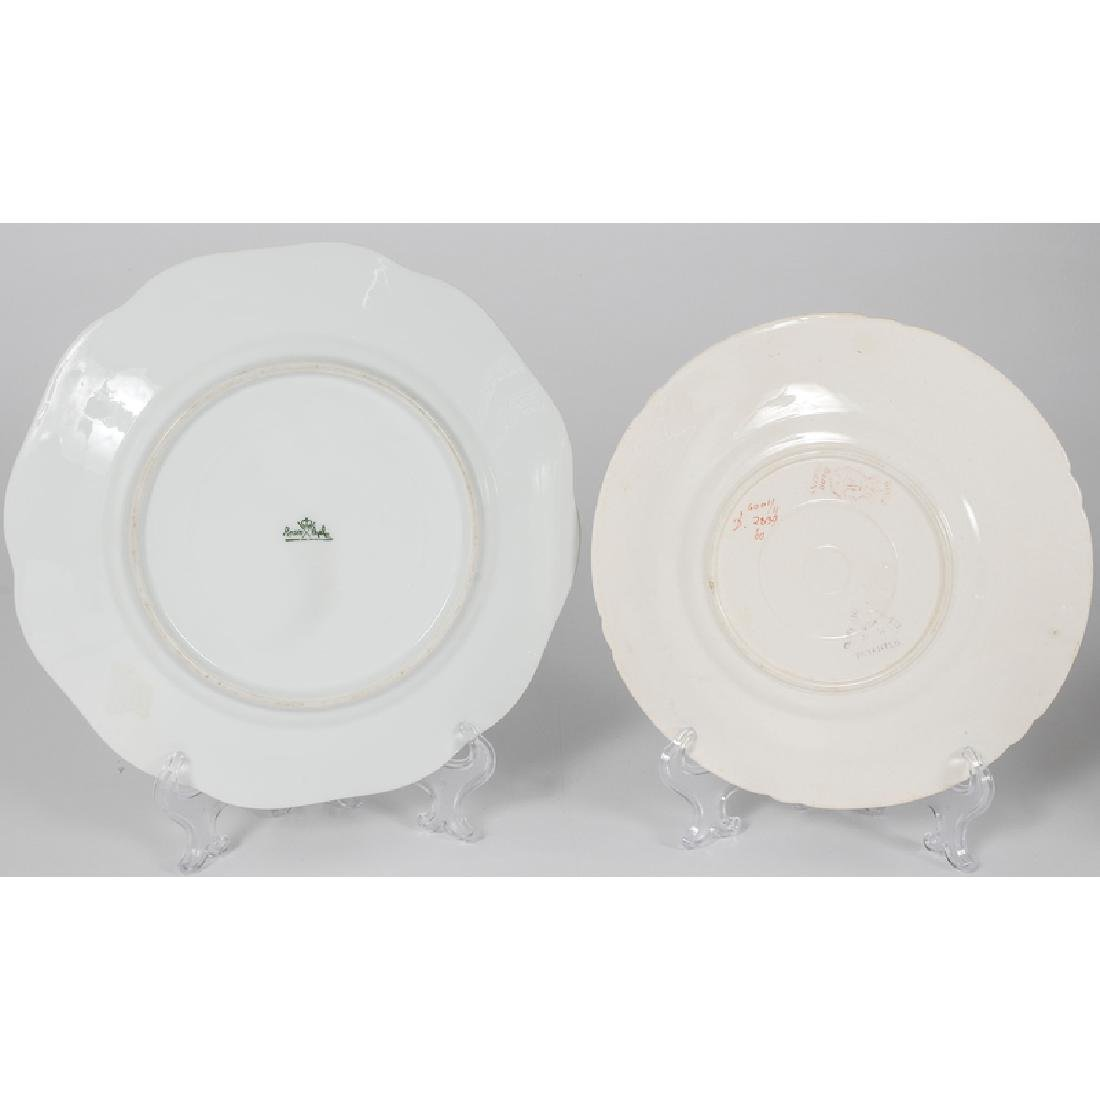 Rosenthal and Royal Bonn Lunch Plate Sets - 2